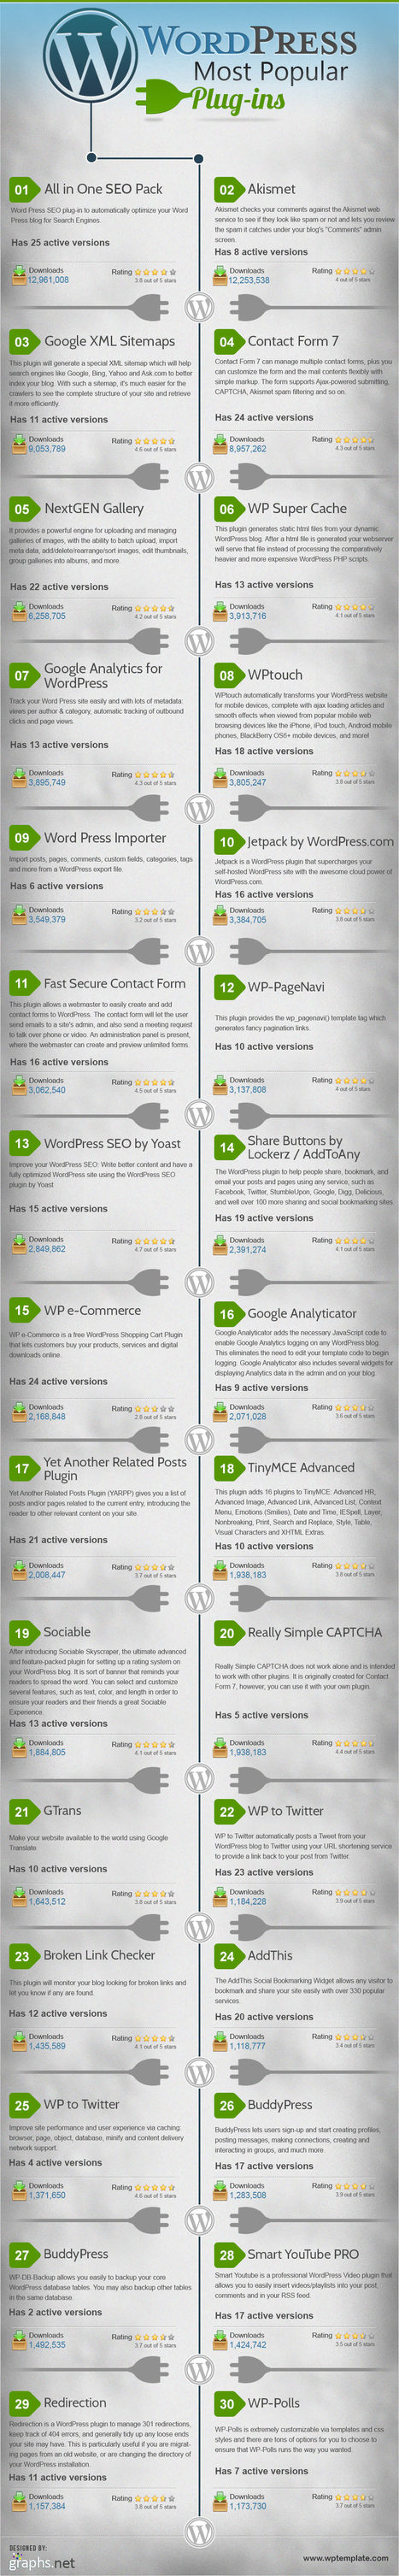 Most Popular #WordPress Plugins [Infographic] | Software, tools & website | Scoop.it